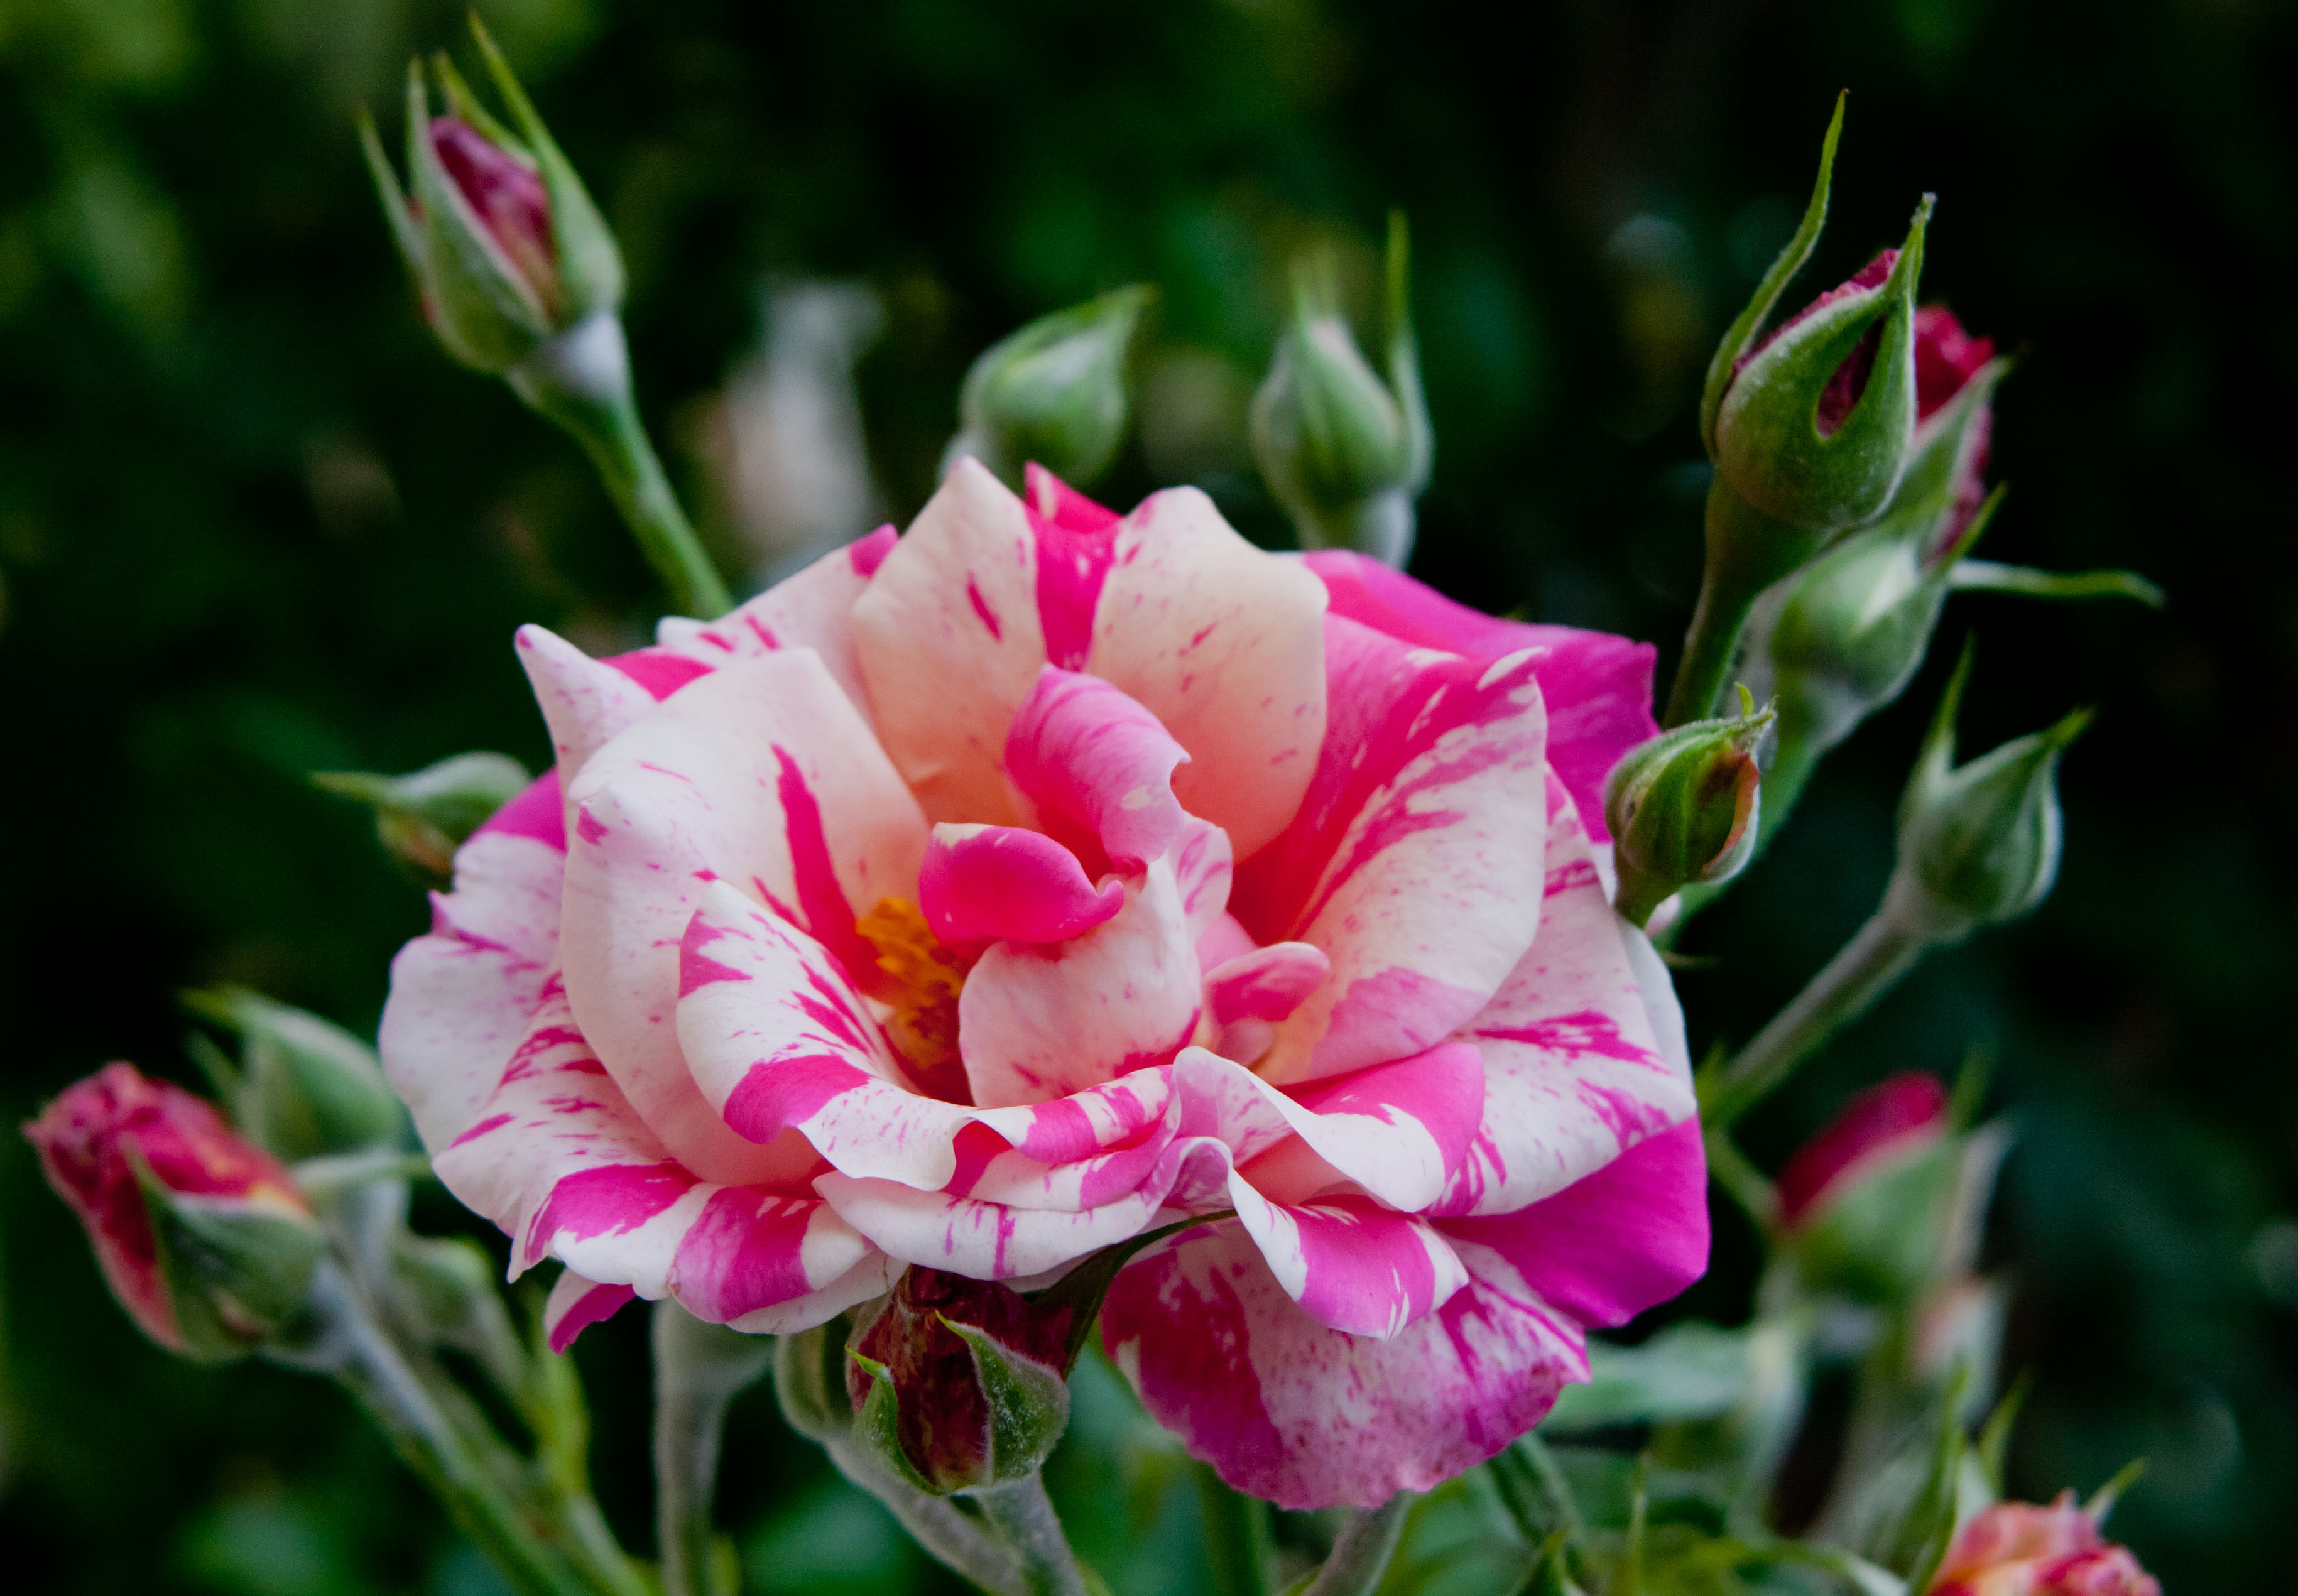 Rosebud radiance | Fables and Flora